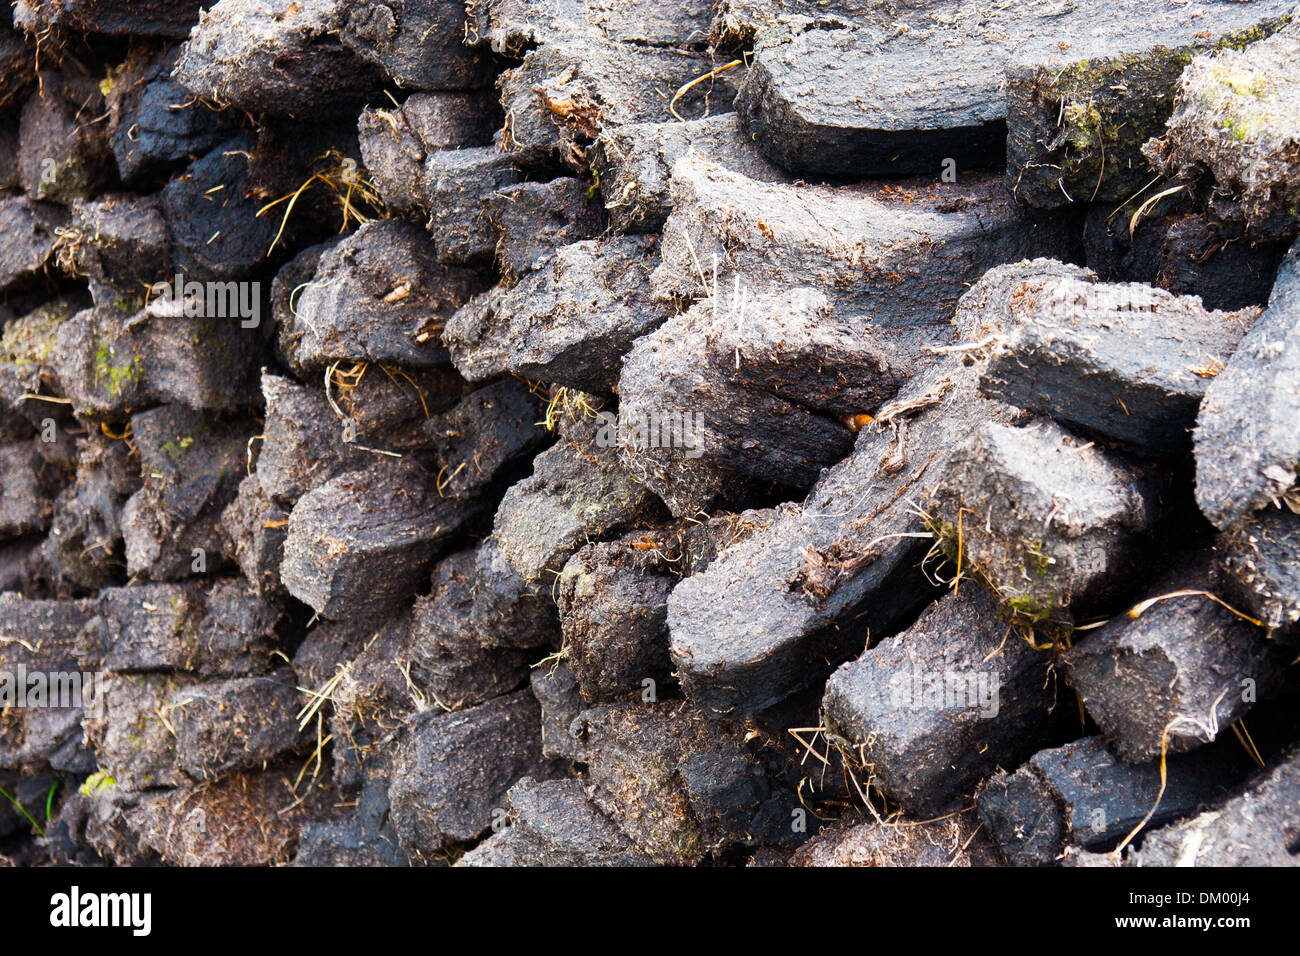 Sods of turf in a reek in the west of Ireland - Stock Image